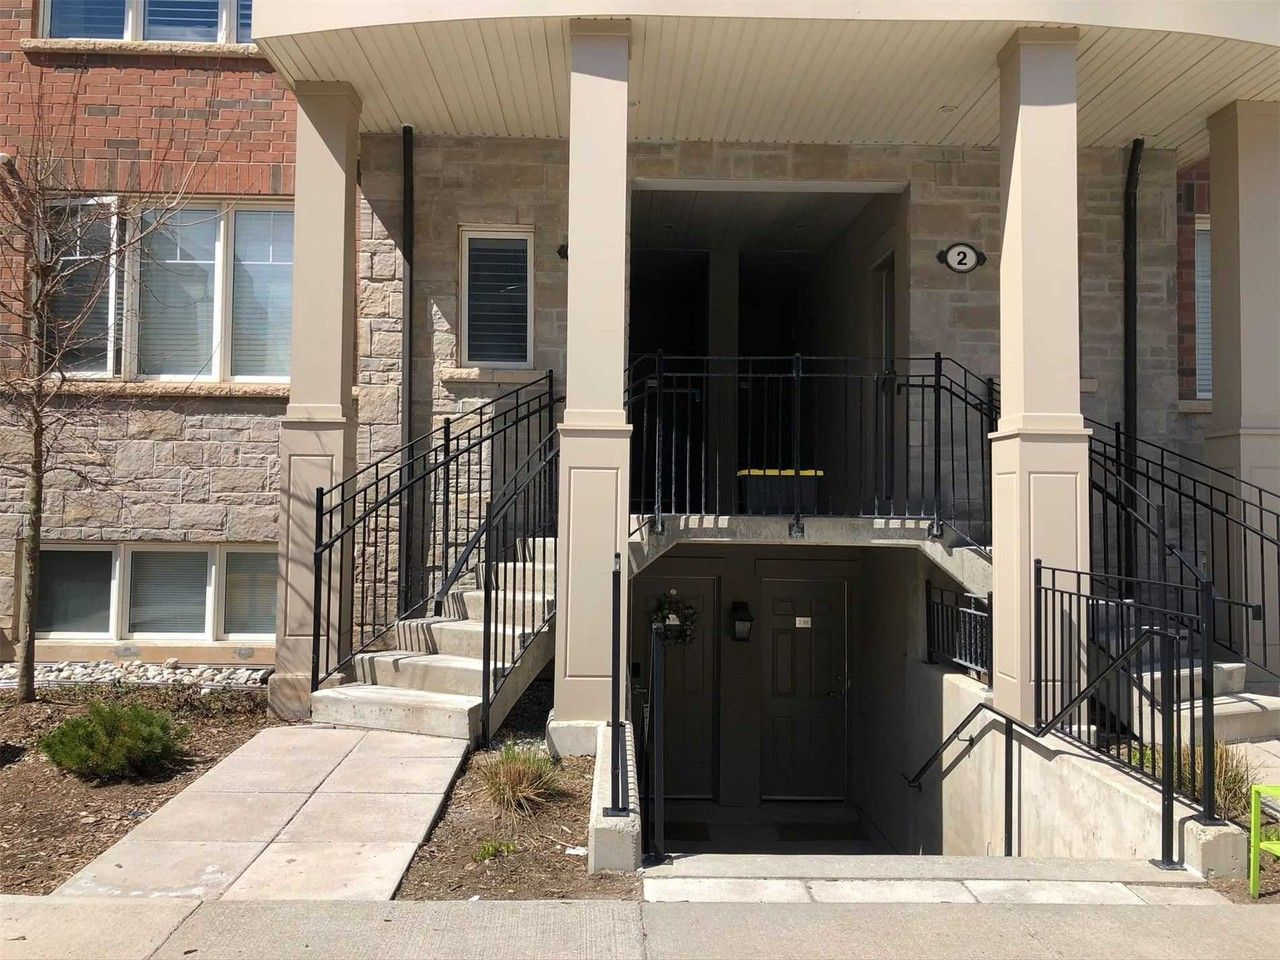 2420 Baronwood Drive 1 04 Oakville On L6m 0x6 2 Bedroom Condo For Rent For 2 300 Month Zumper